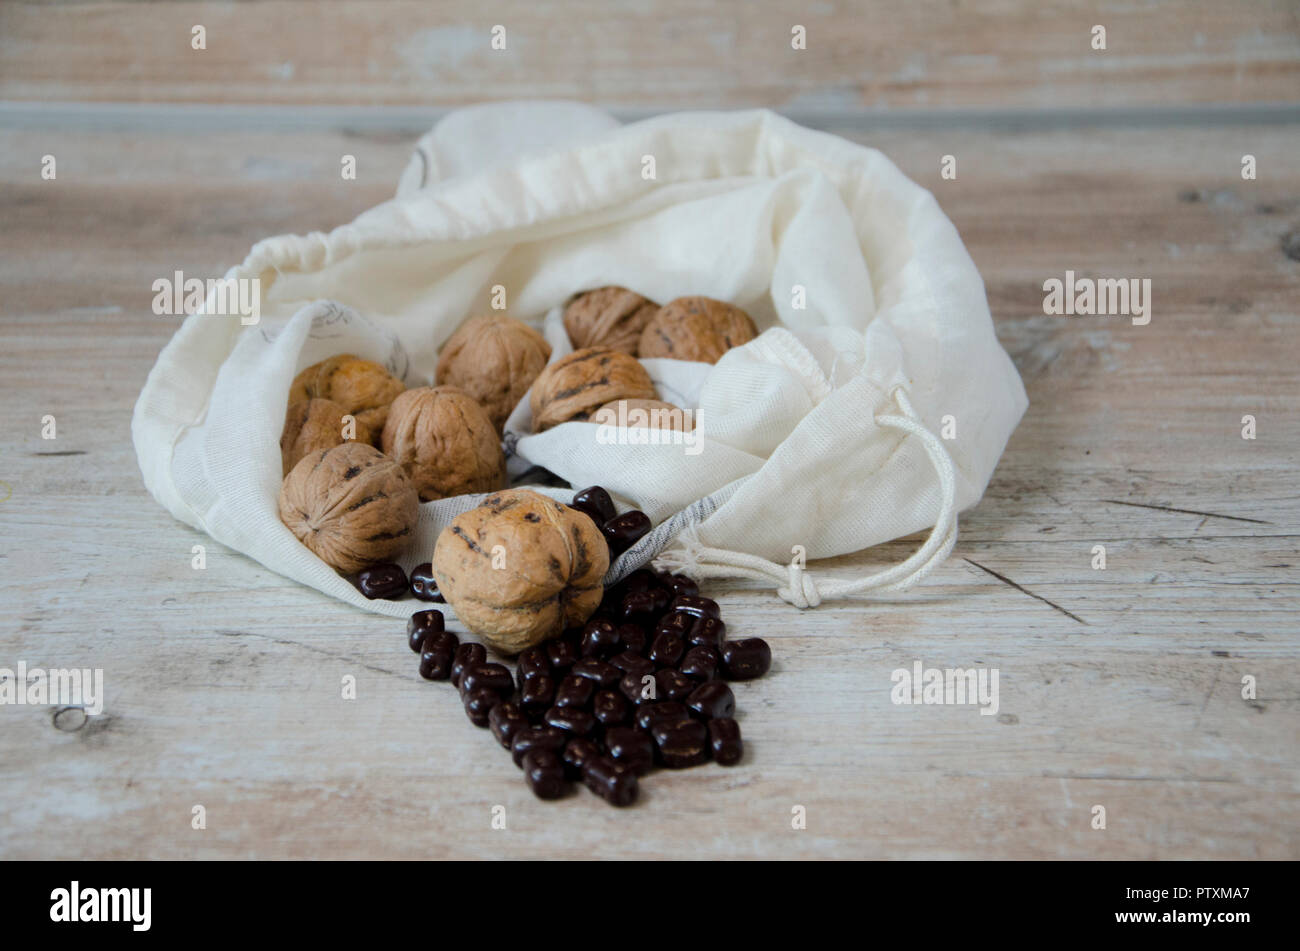 Walnuts in a bag with chocolate beans on a wooden kitchen table - Stock Image